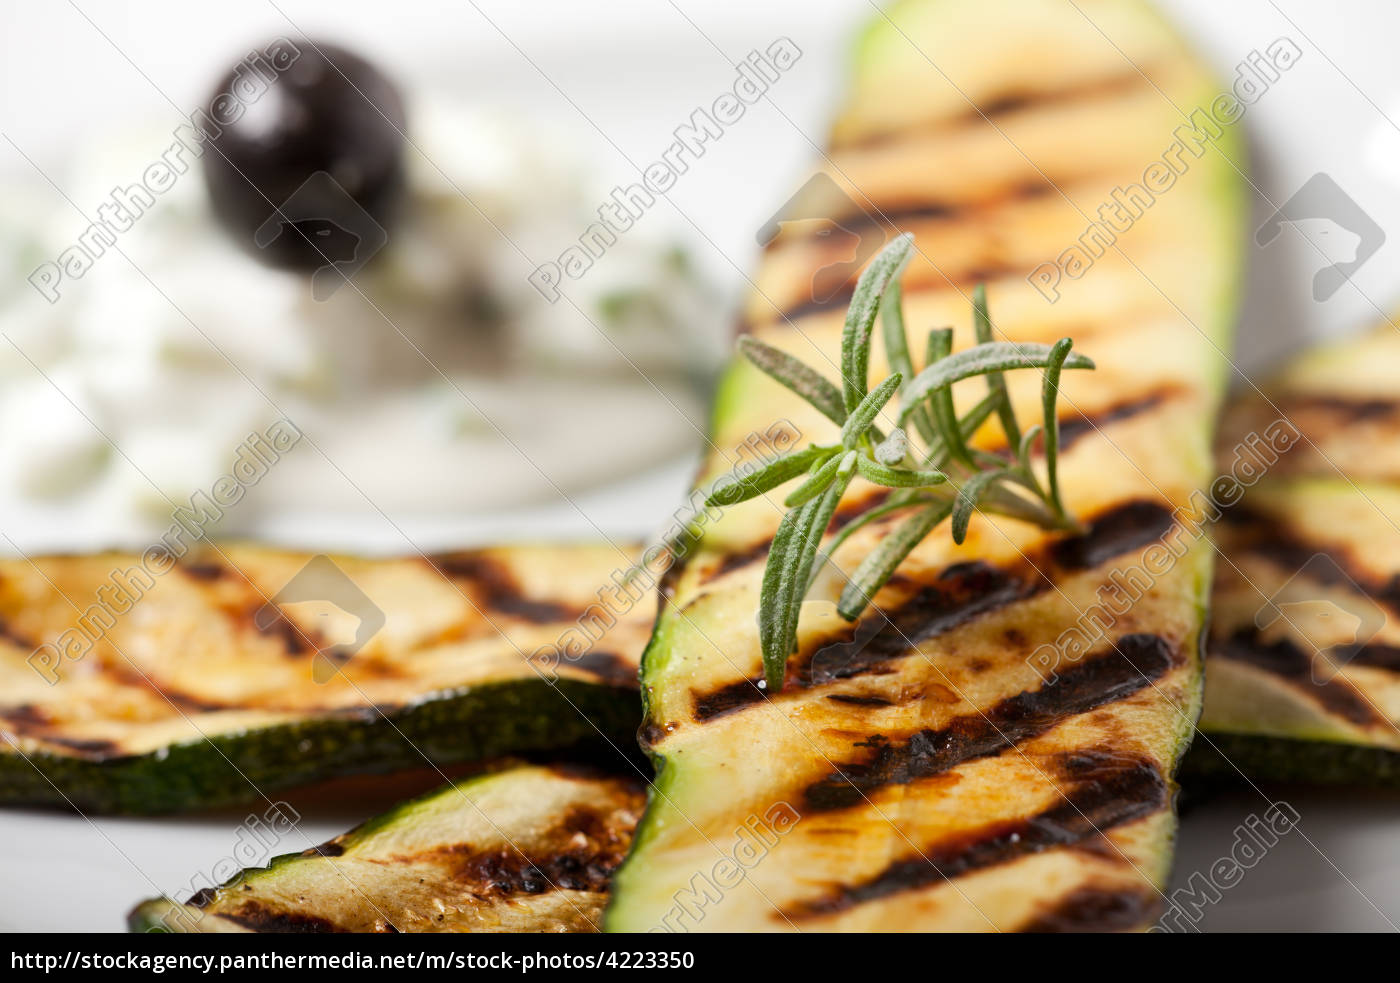 grilled, zucchini, with, rosemary, leaf - 4223350